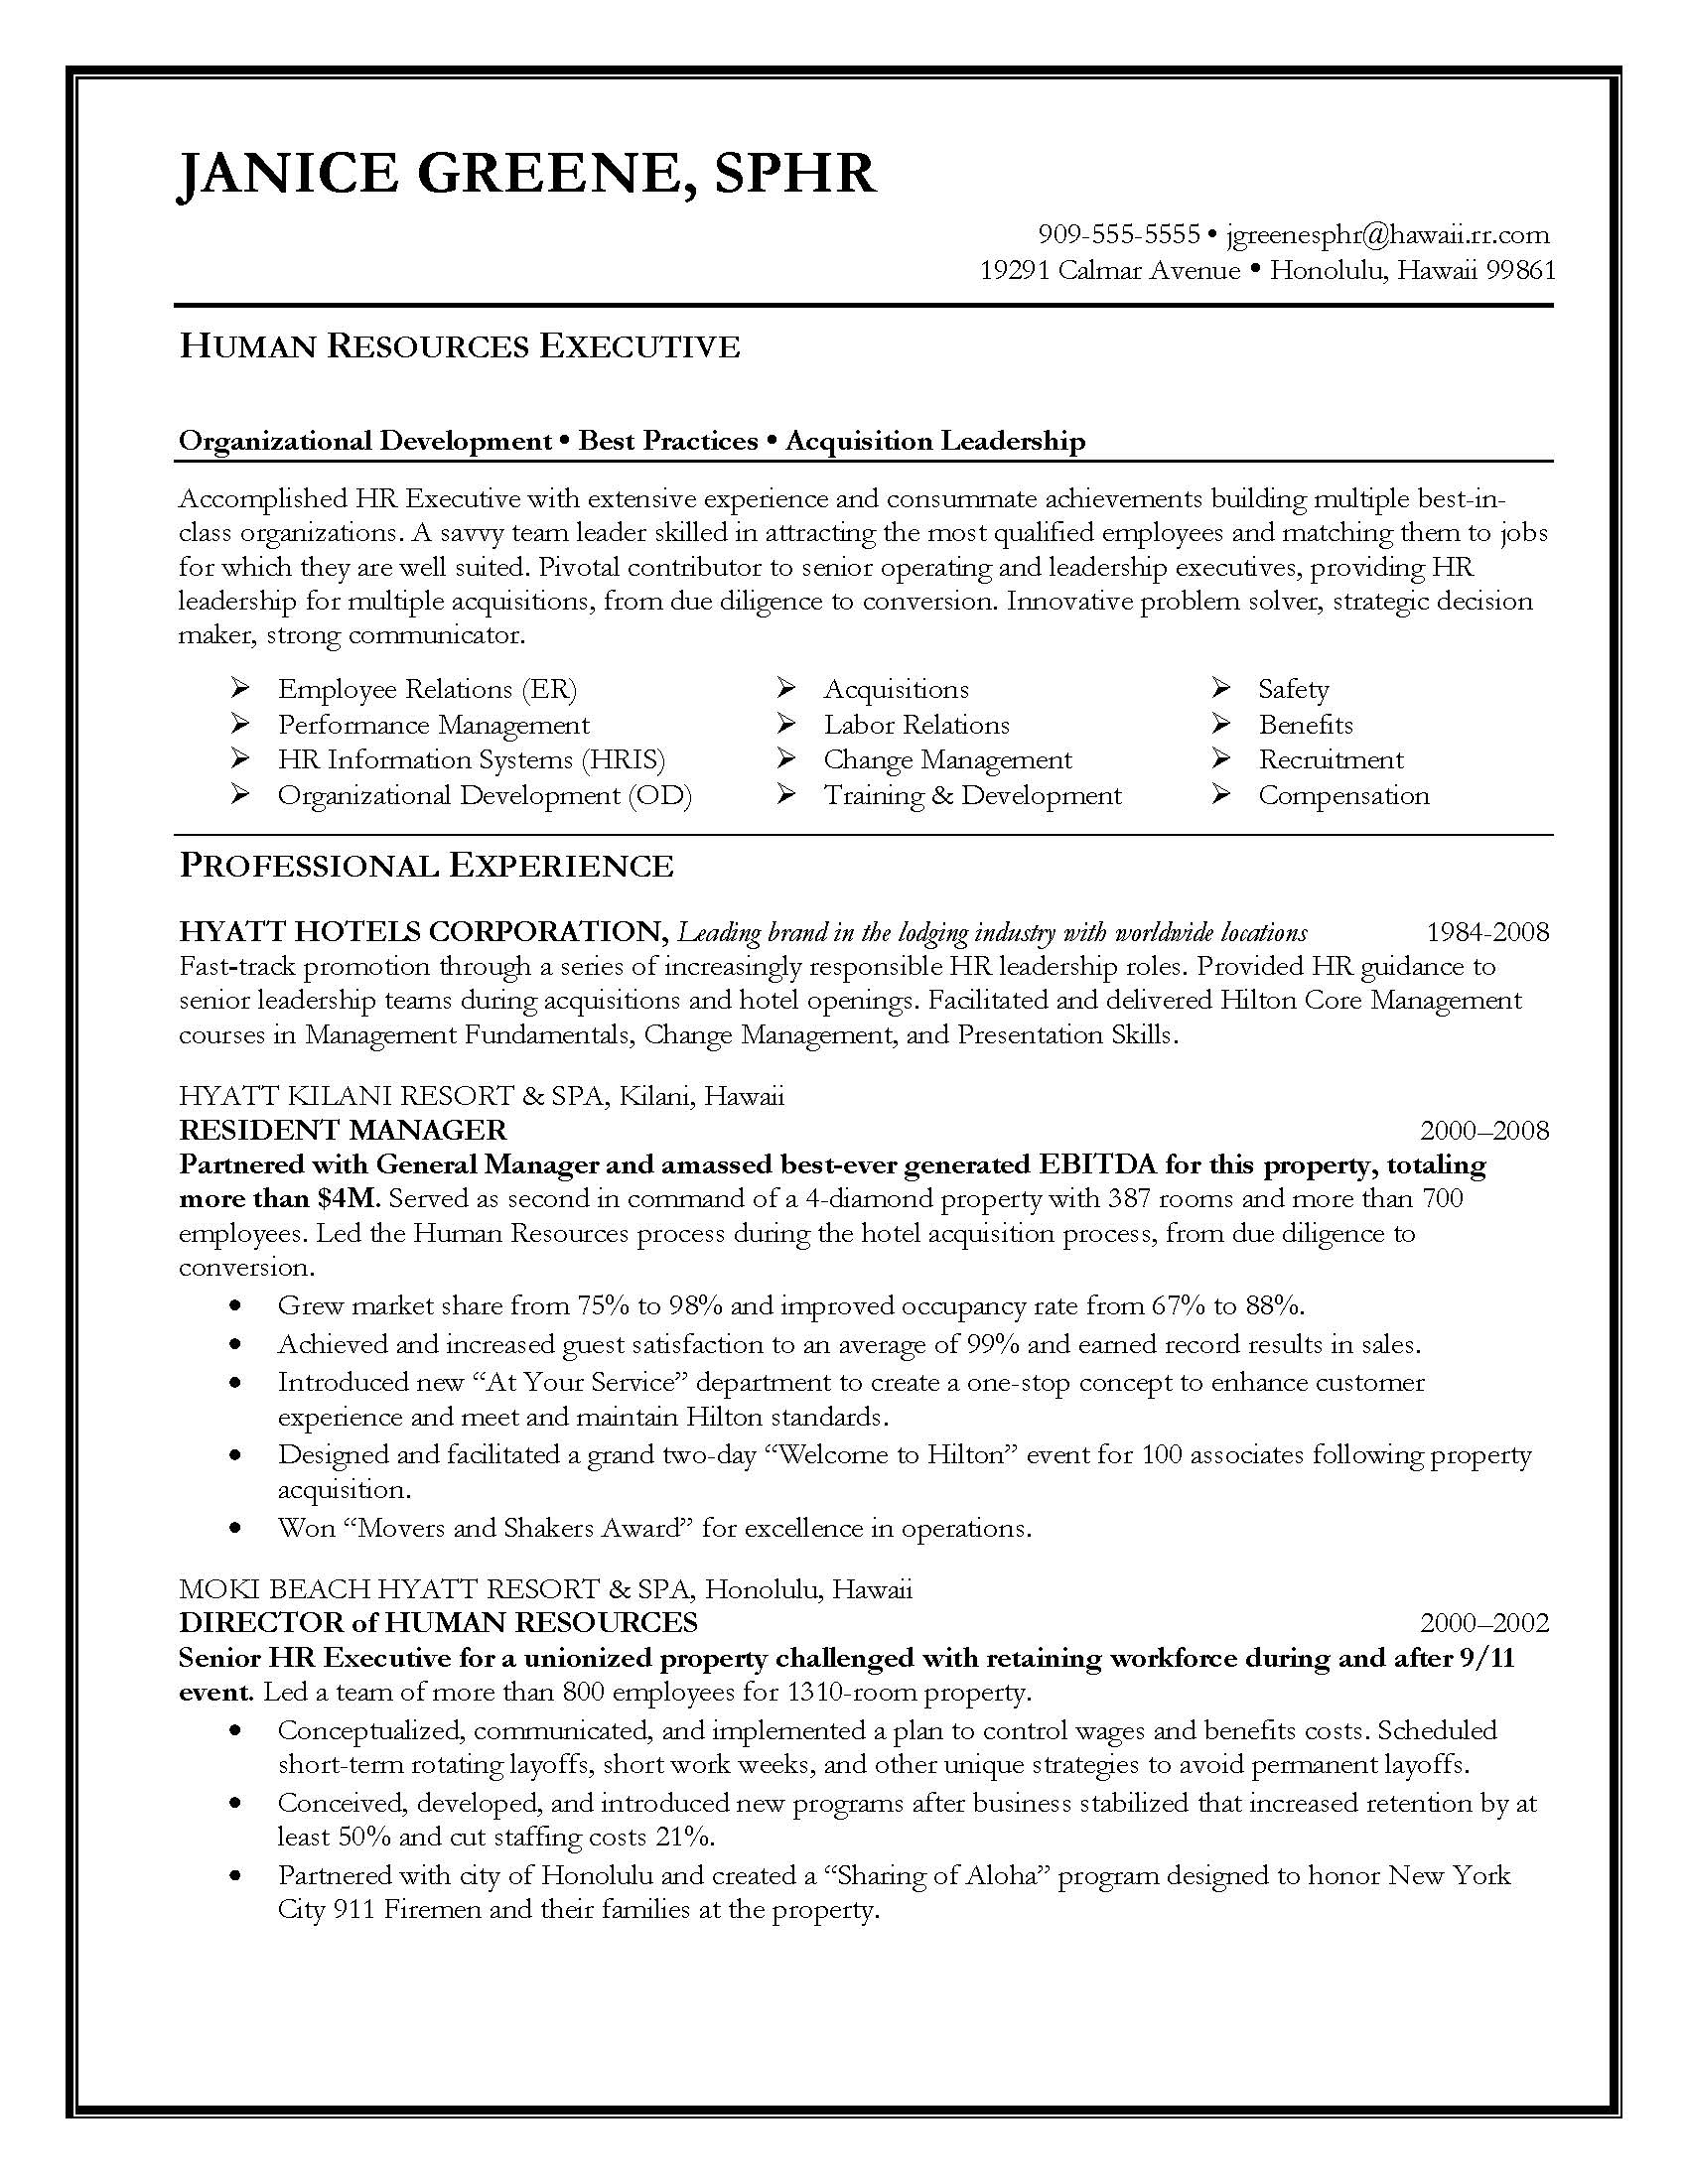 resume samples elite resume writing human resources executive resume sample provided by elite resume writing services